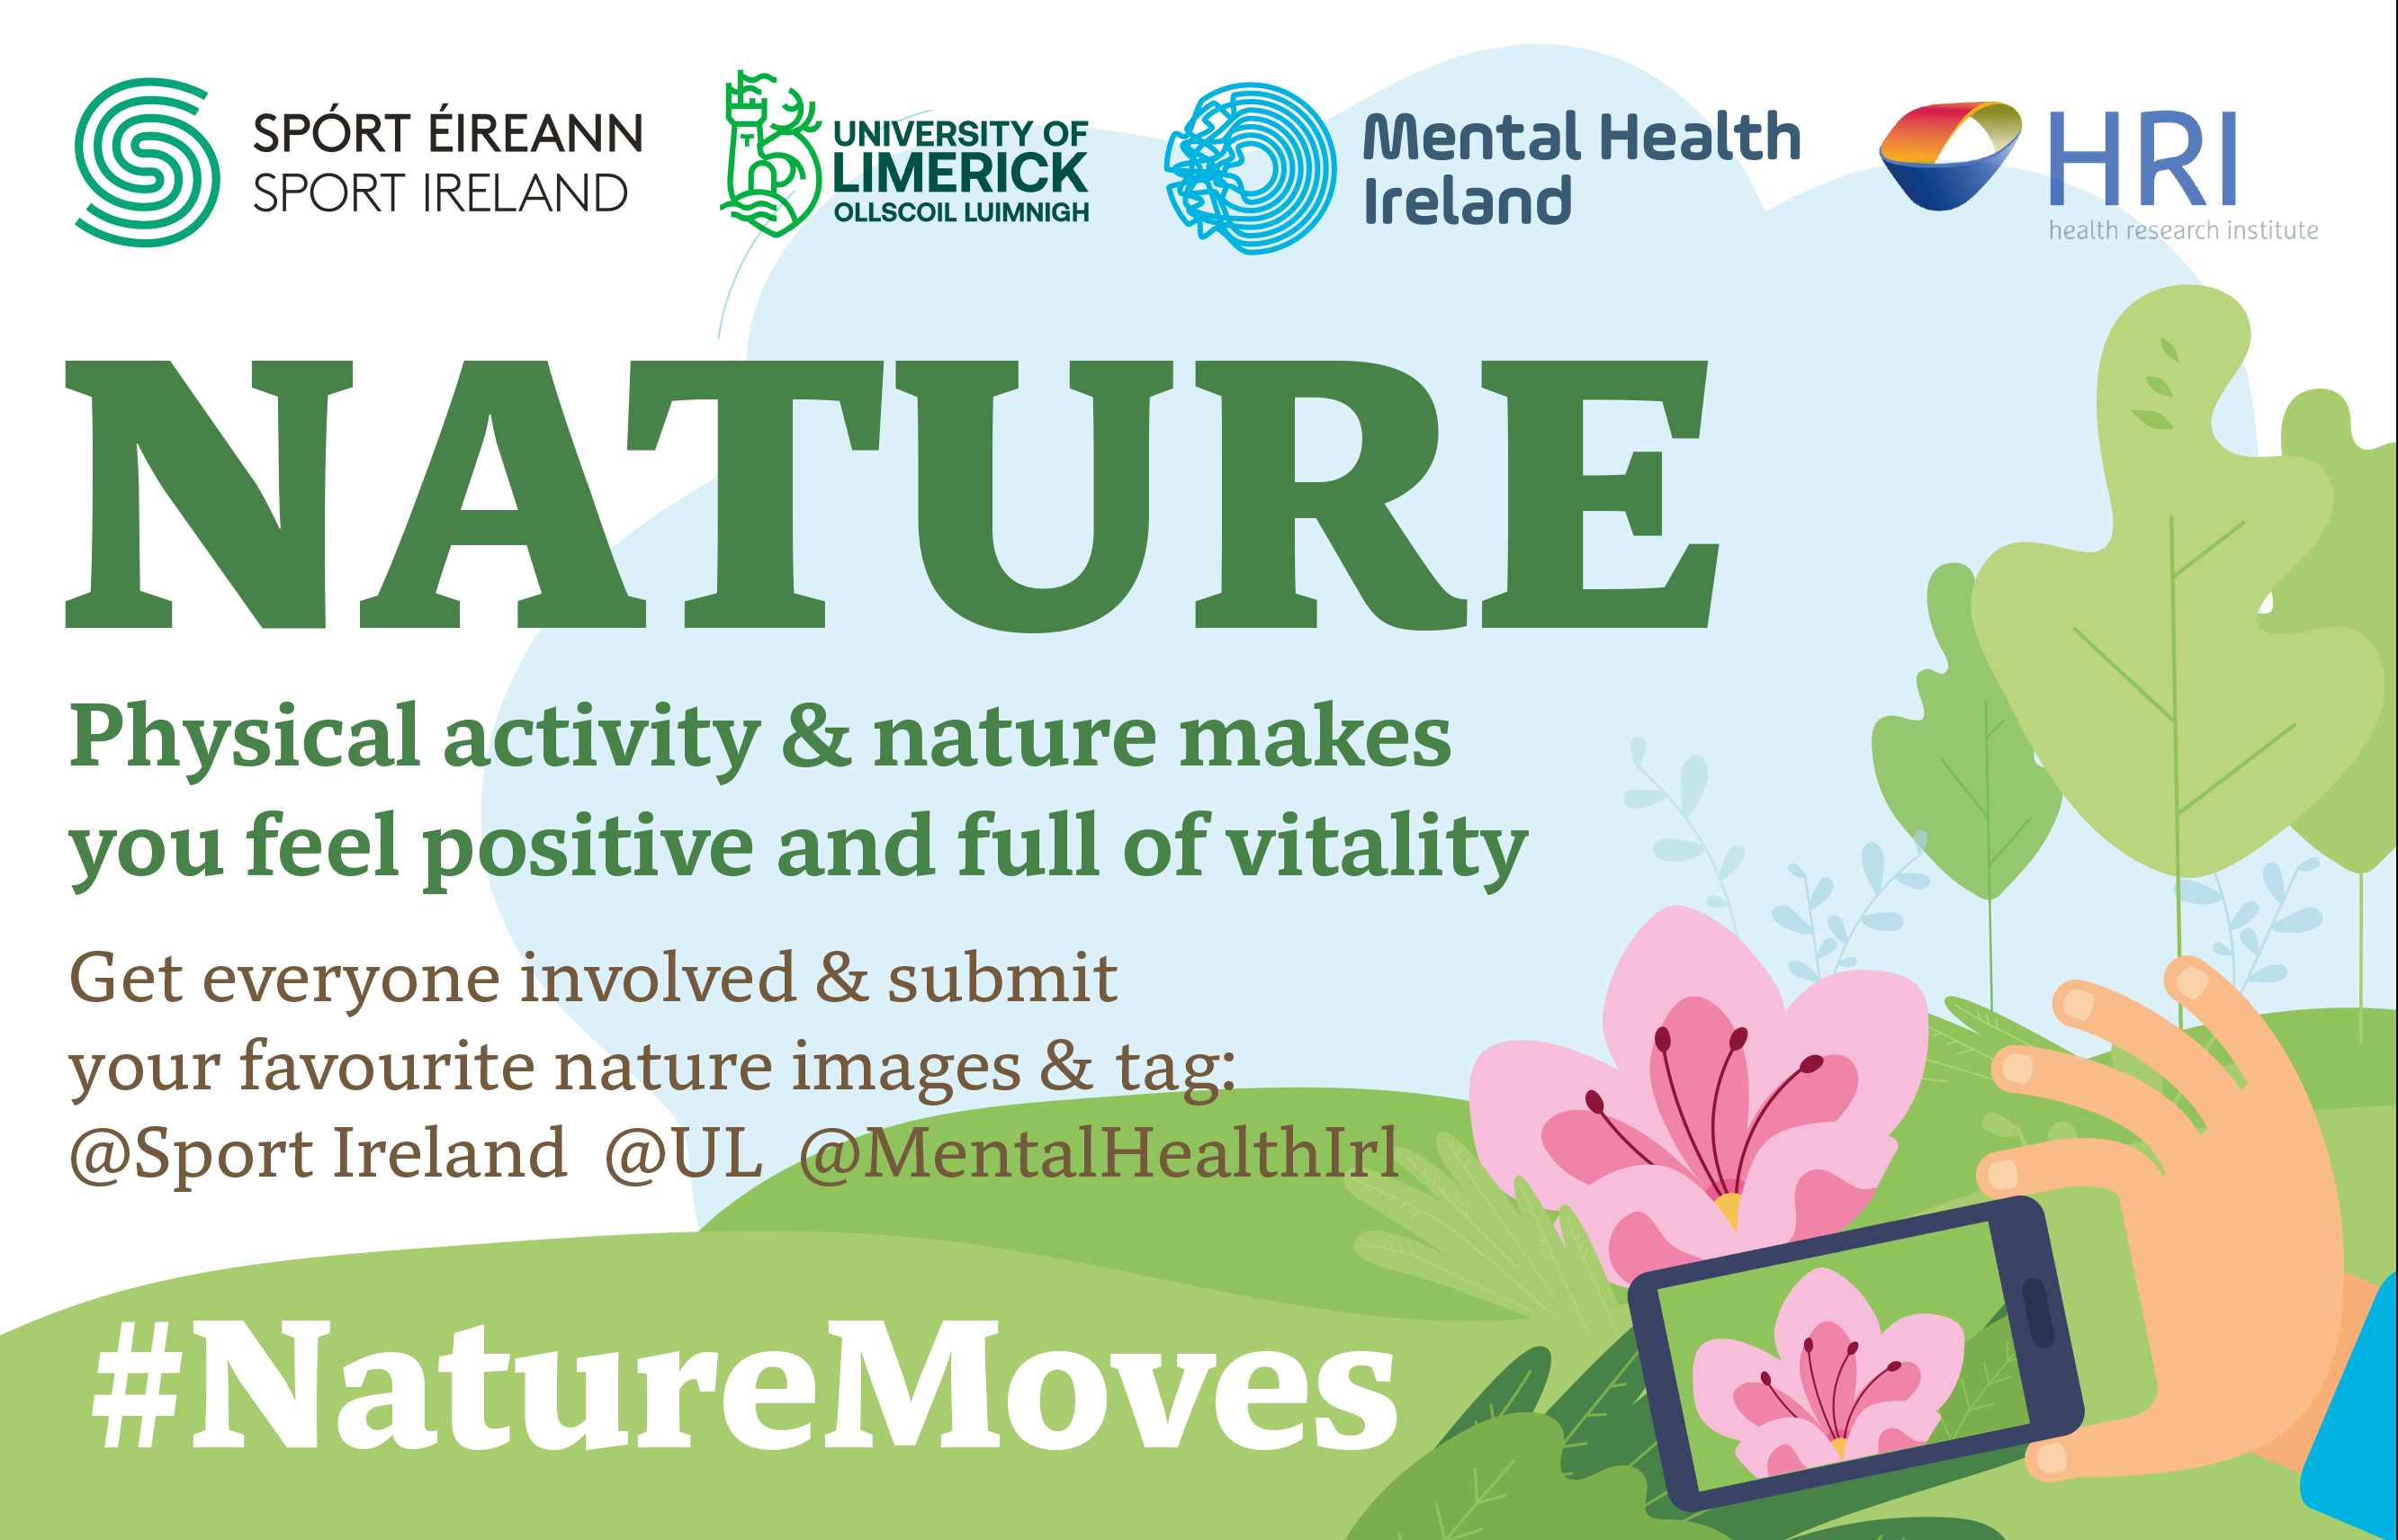 Tag SportIreland in your nature photos and use the hashtag #naturemoves